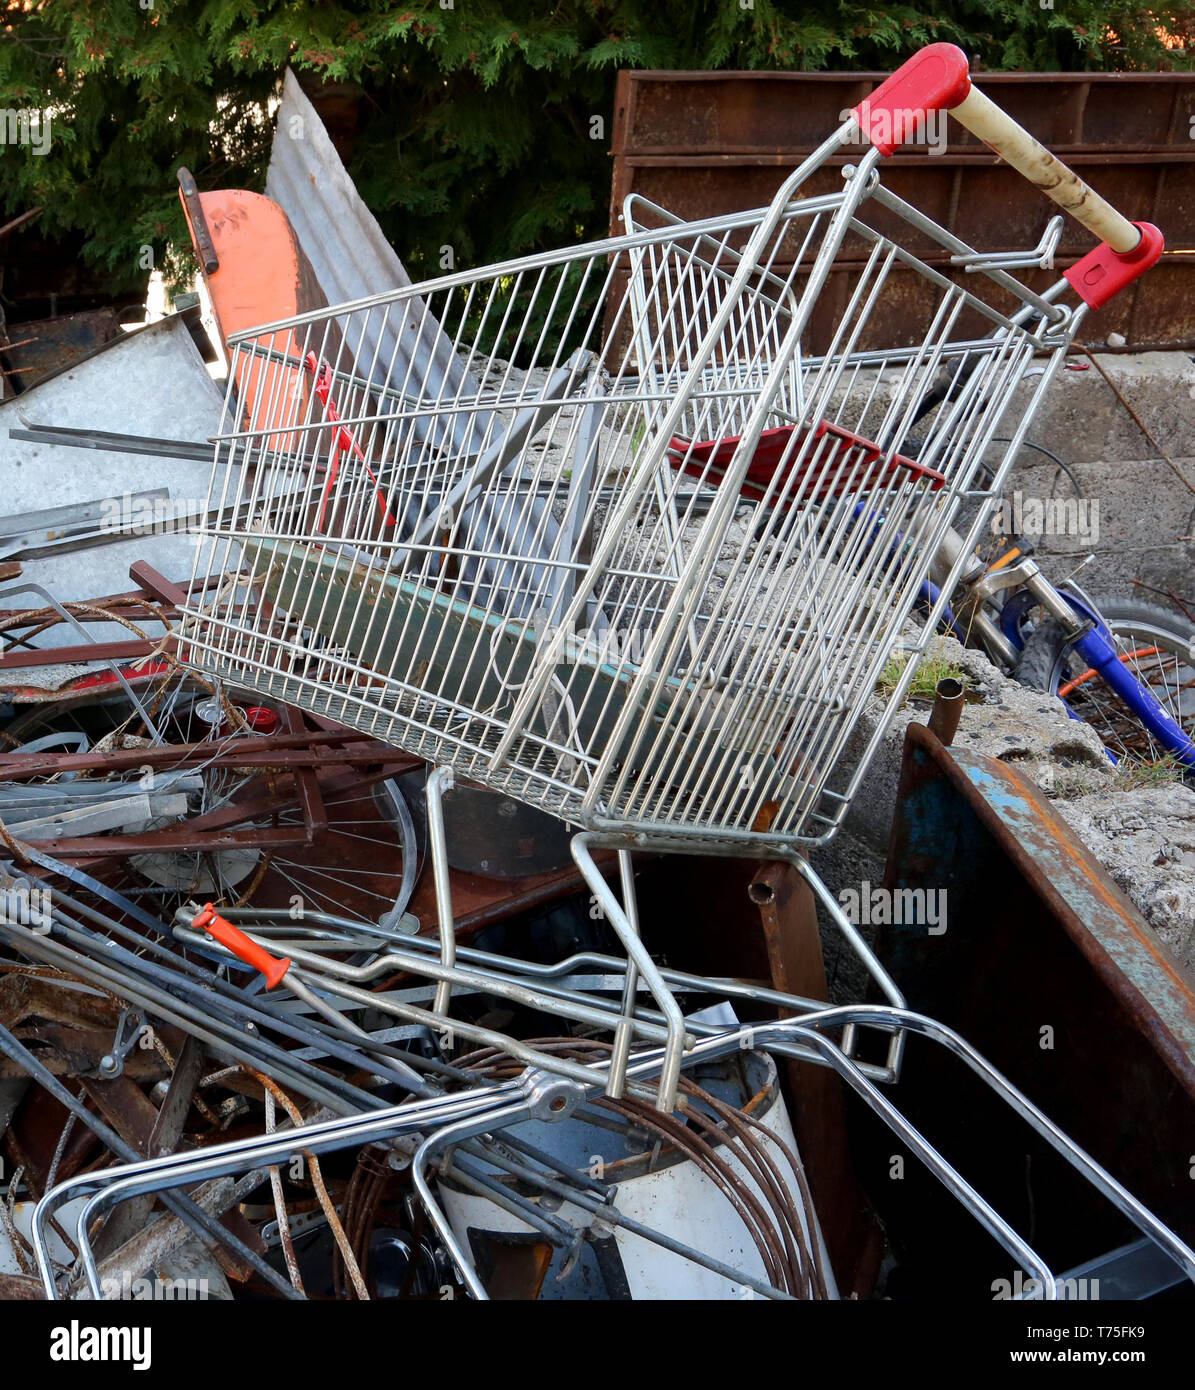 old supermarket shopping cart in the large dump of old and unusable ferrous material - Stock Image